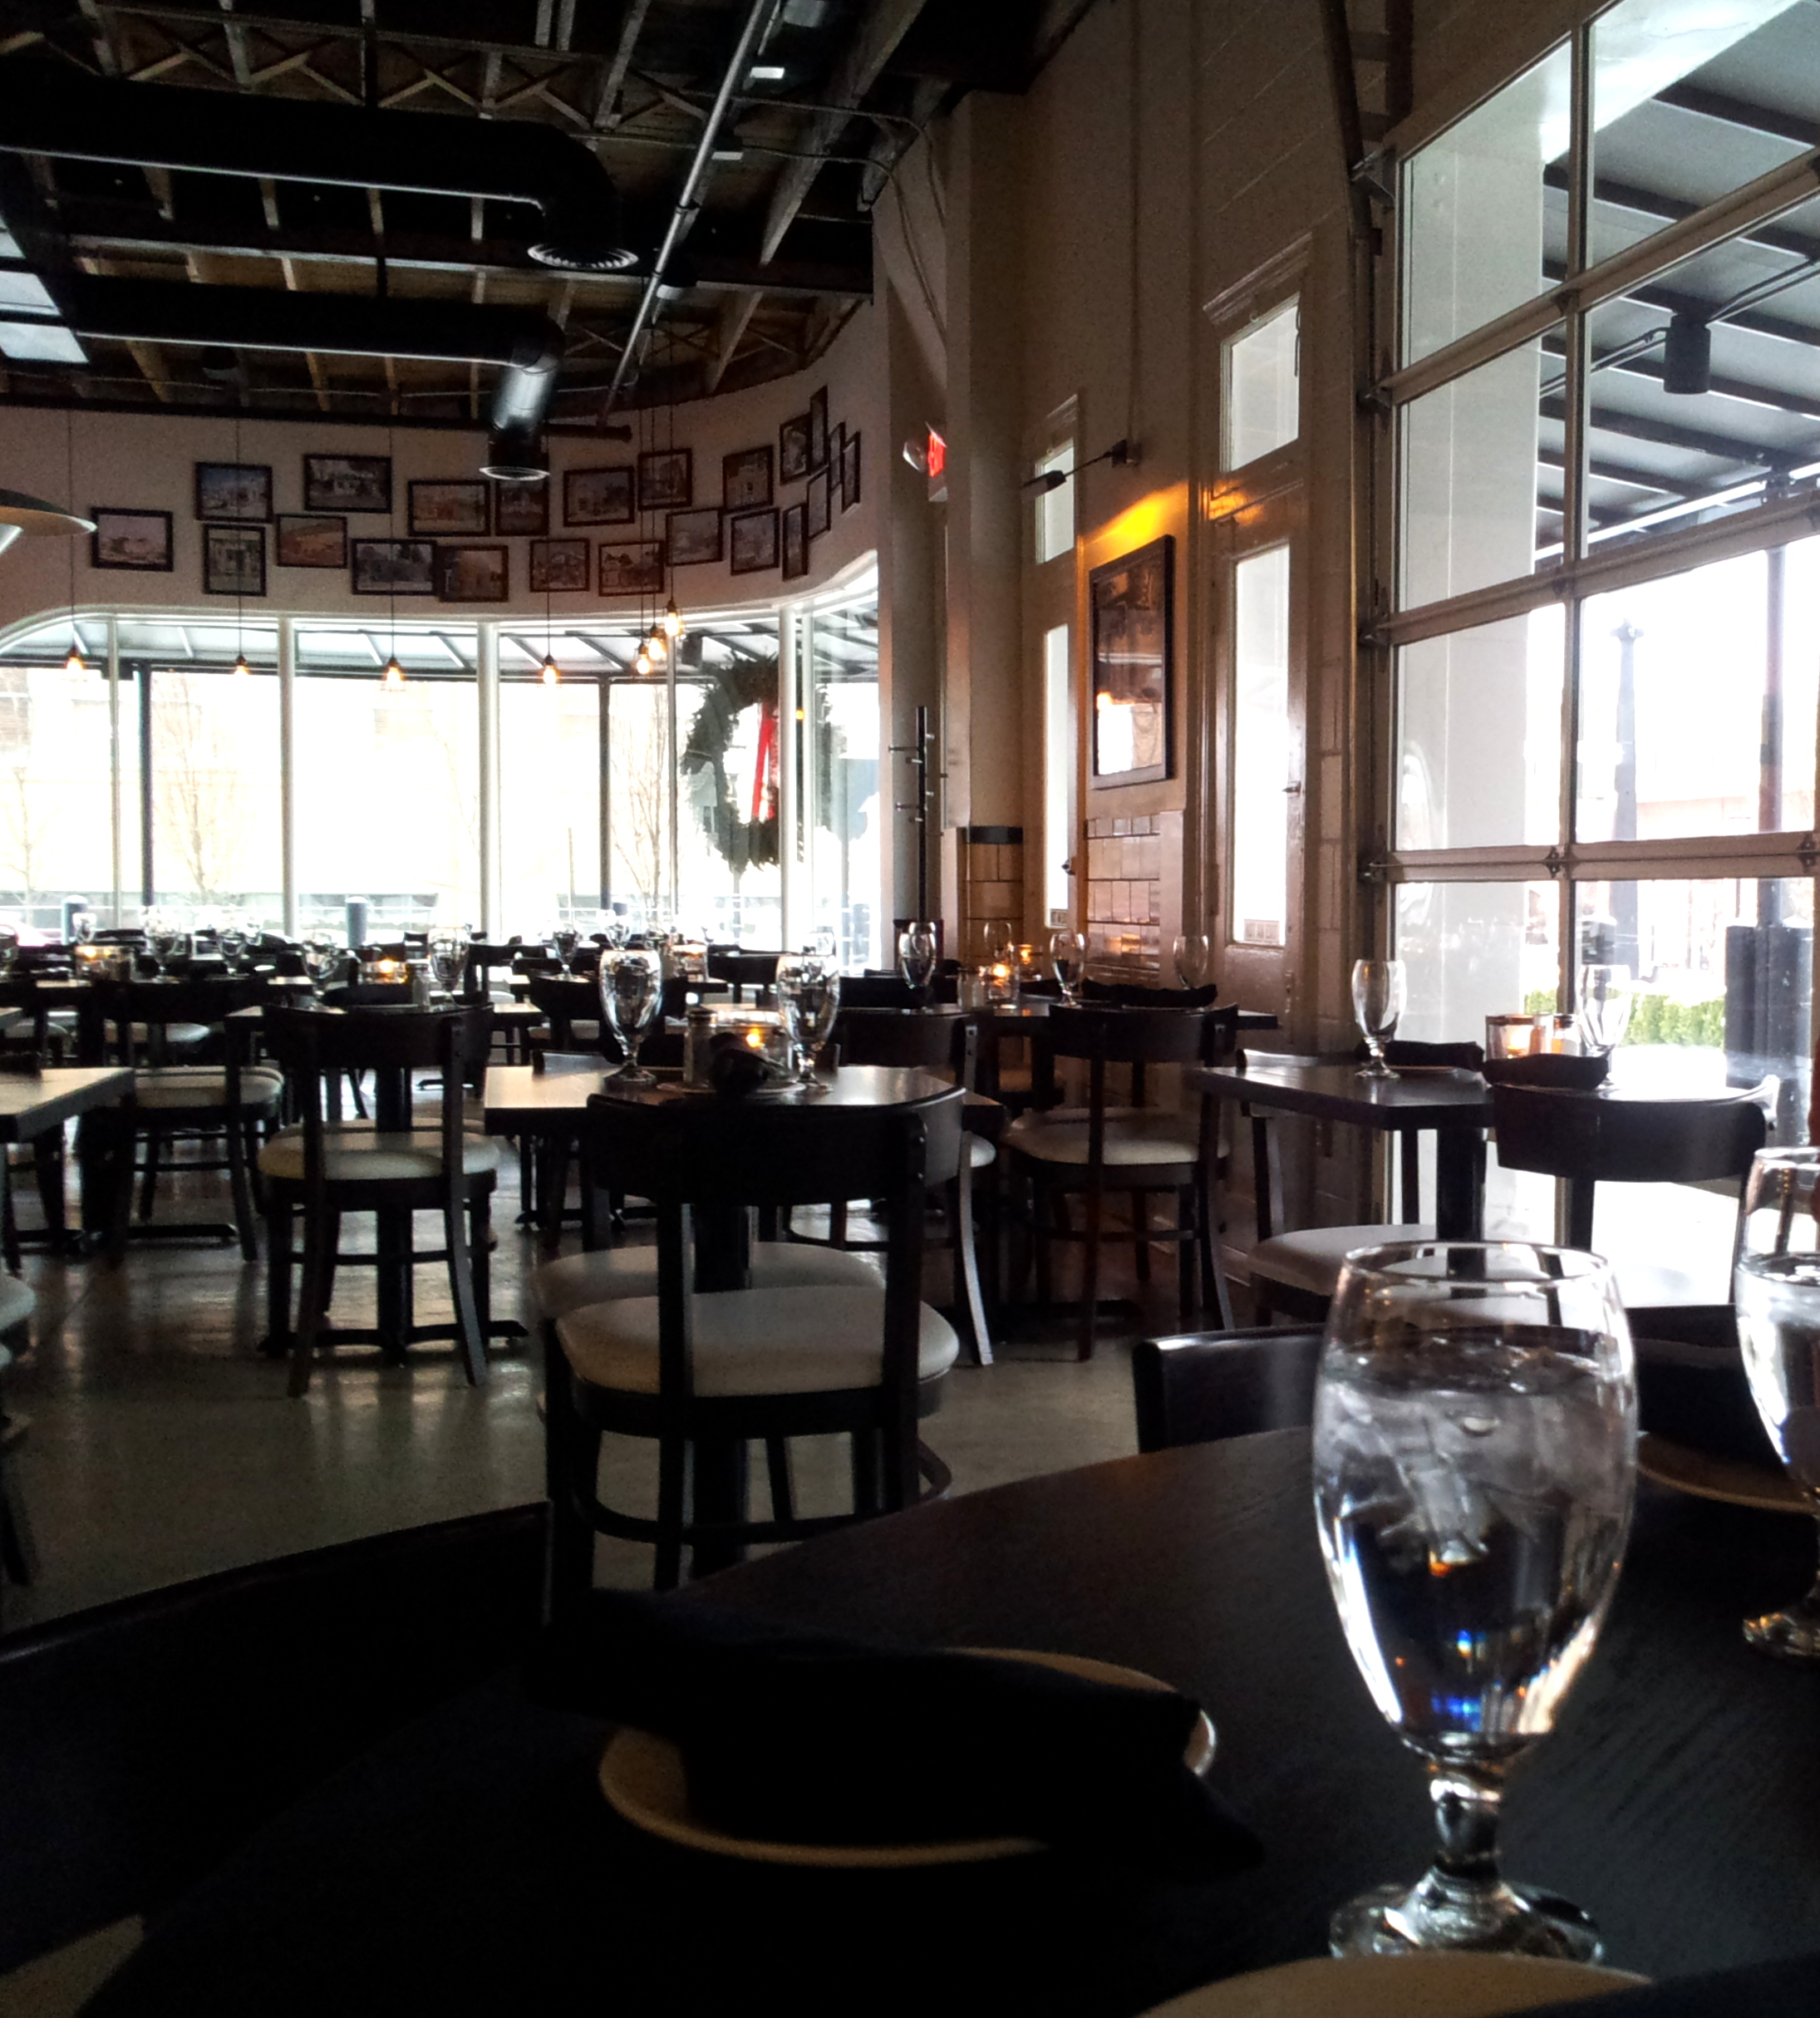 Beautiful Something We Love In The Metro Detroit Area With So Much Automotive History  Around Us. Consider The Recent Re Opening Of The Vinsetta Garage As A  Restaurant ...